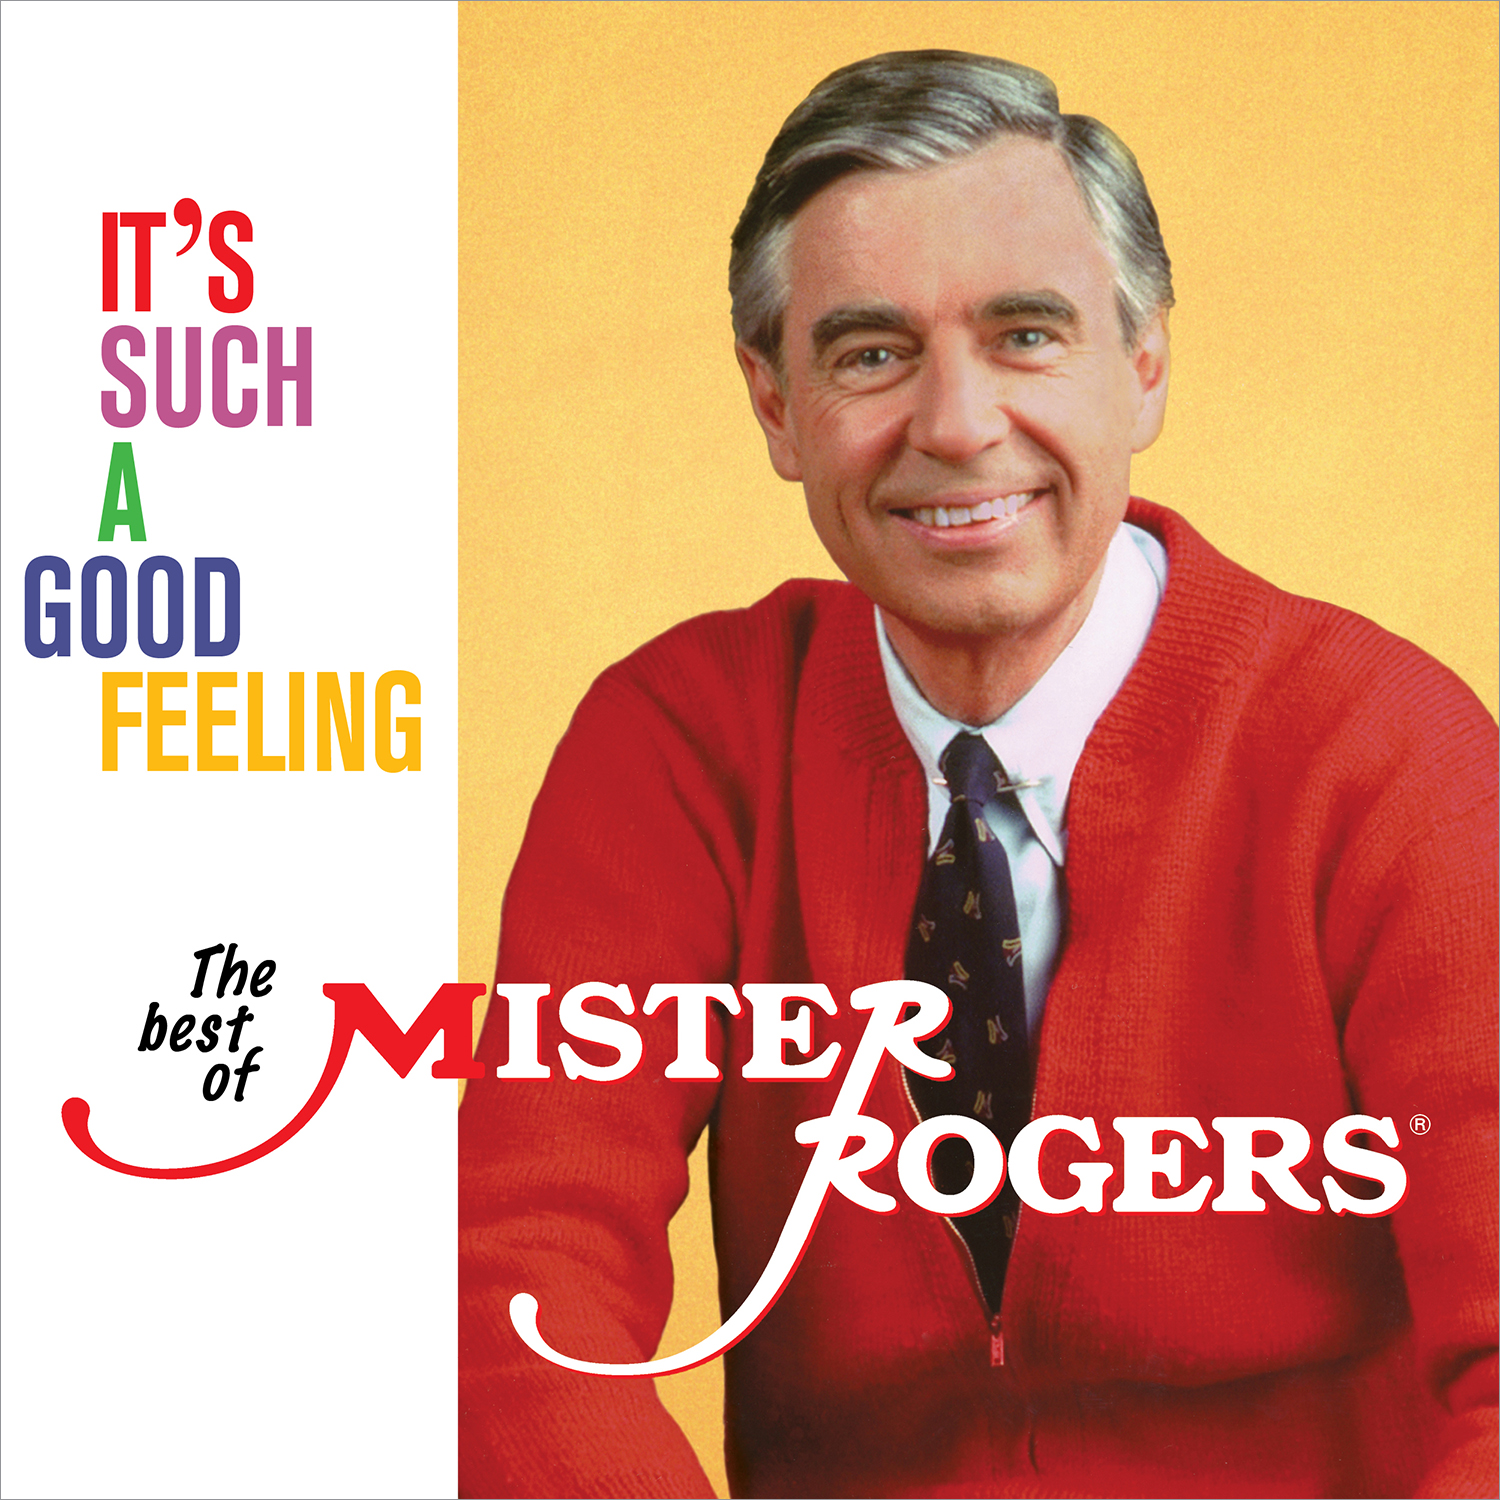 Mister Rogers - It's Such A Good Feeling: The Best Of Mister Rogers  Release Date: October 4, 2019 Label: Omnivore Recordings  SERVICE: Mastering, Restoration NUMBER OF DISCS: 1 GENRE: Vocal FORMAT: CD